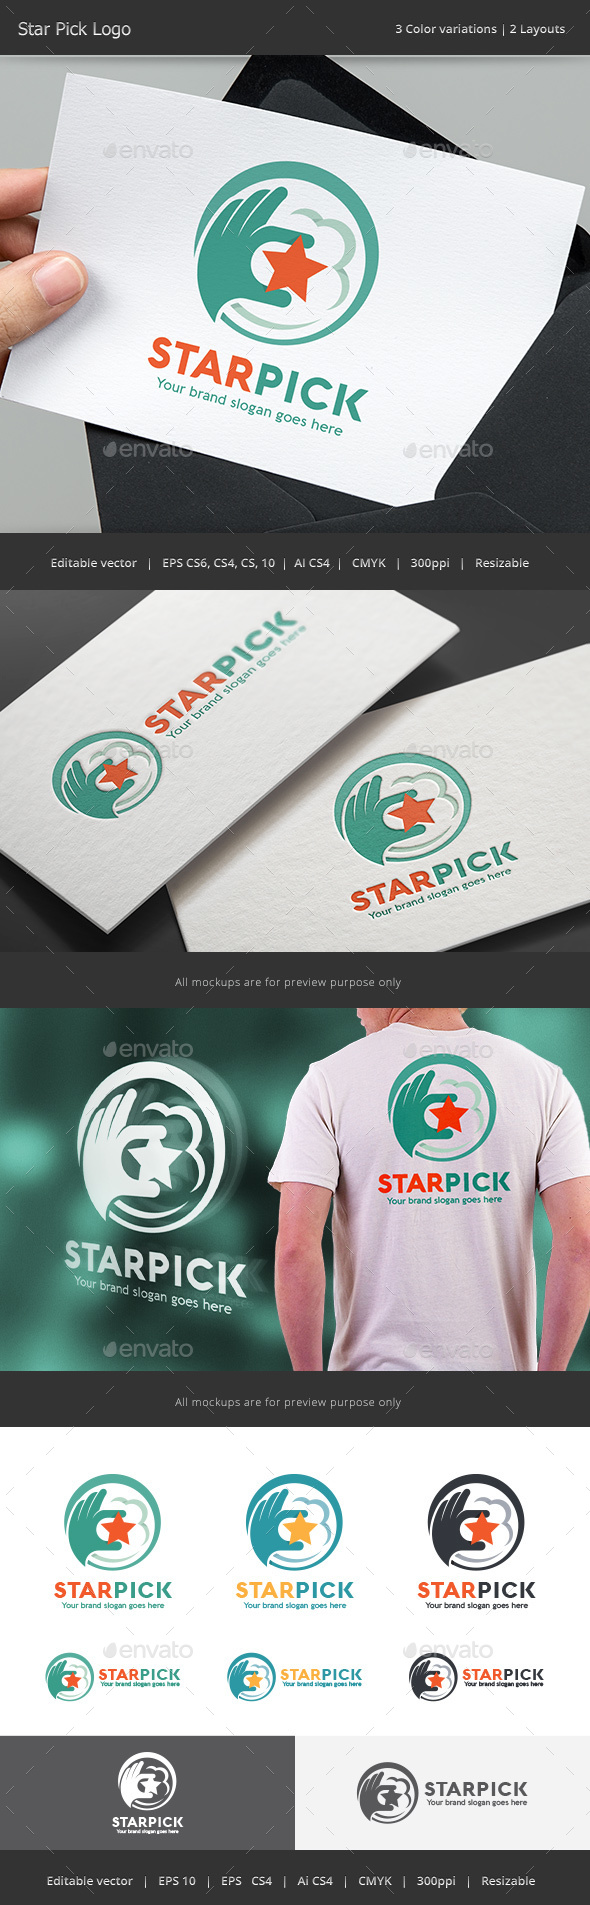 Star Pick Logo - Vector Abstract